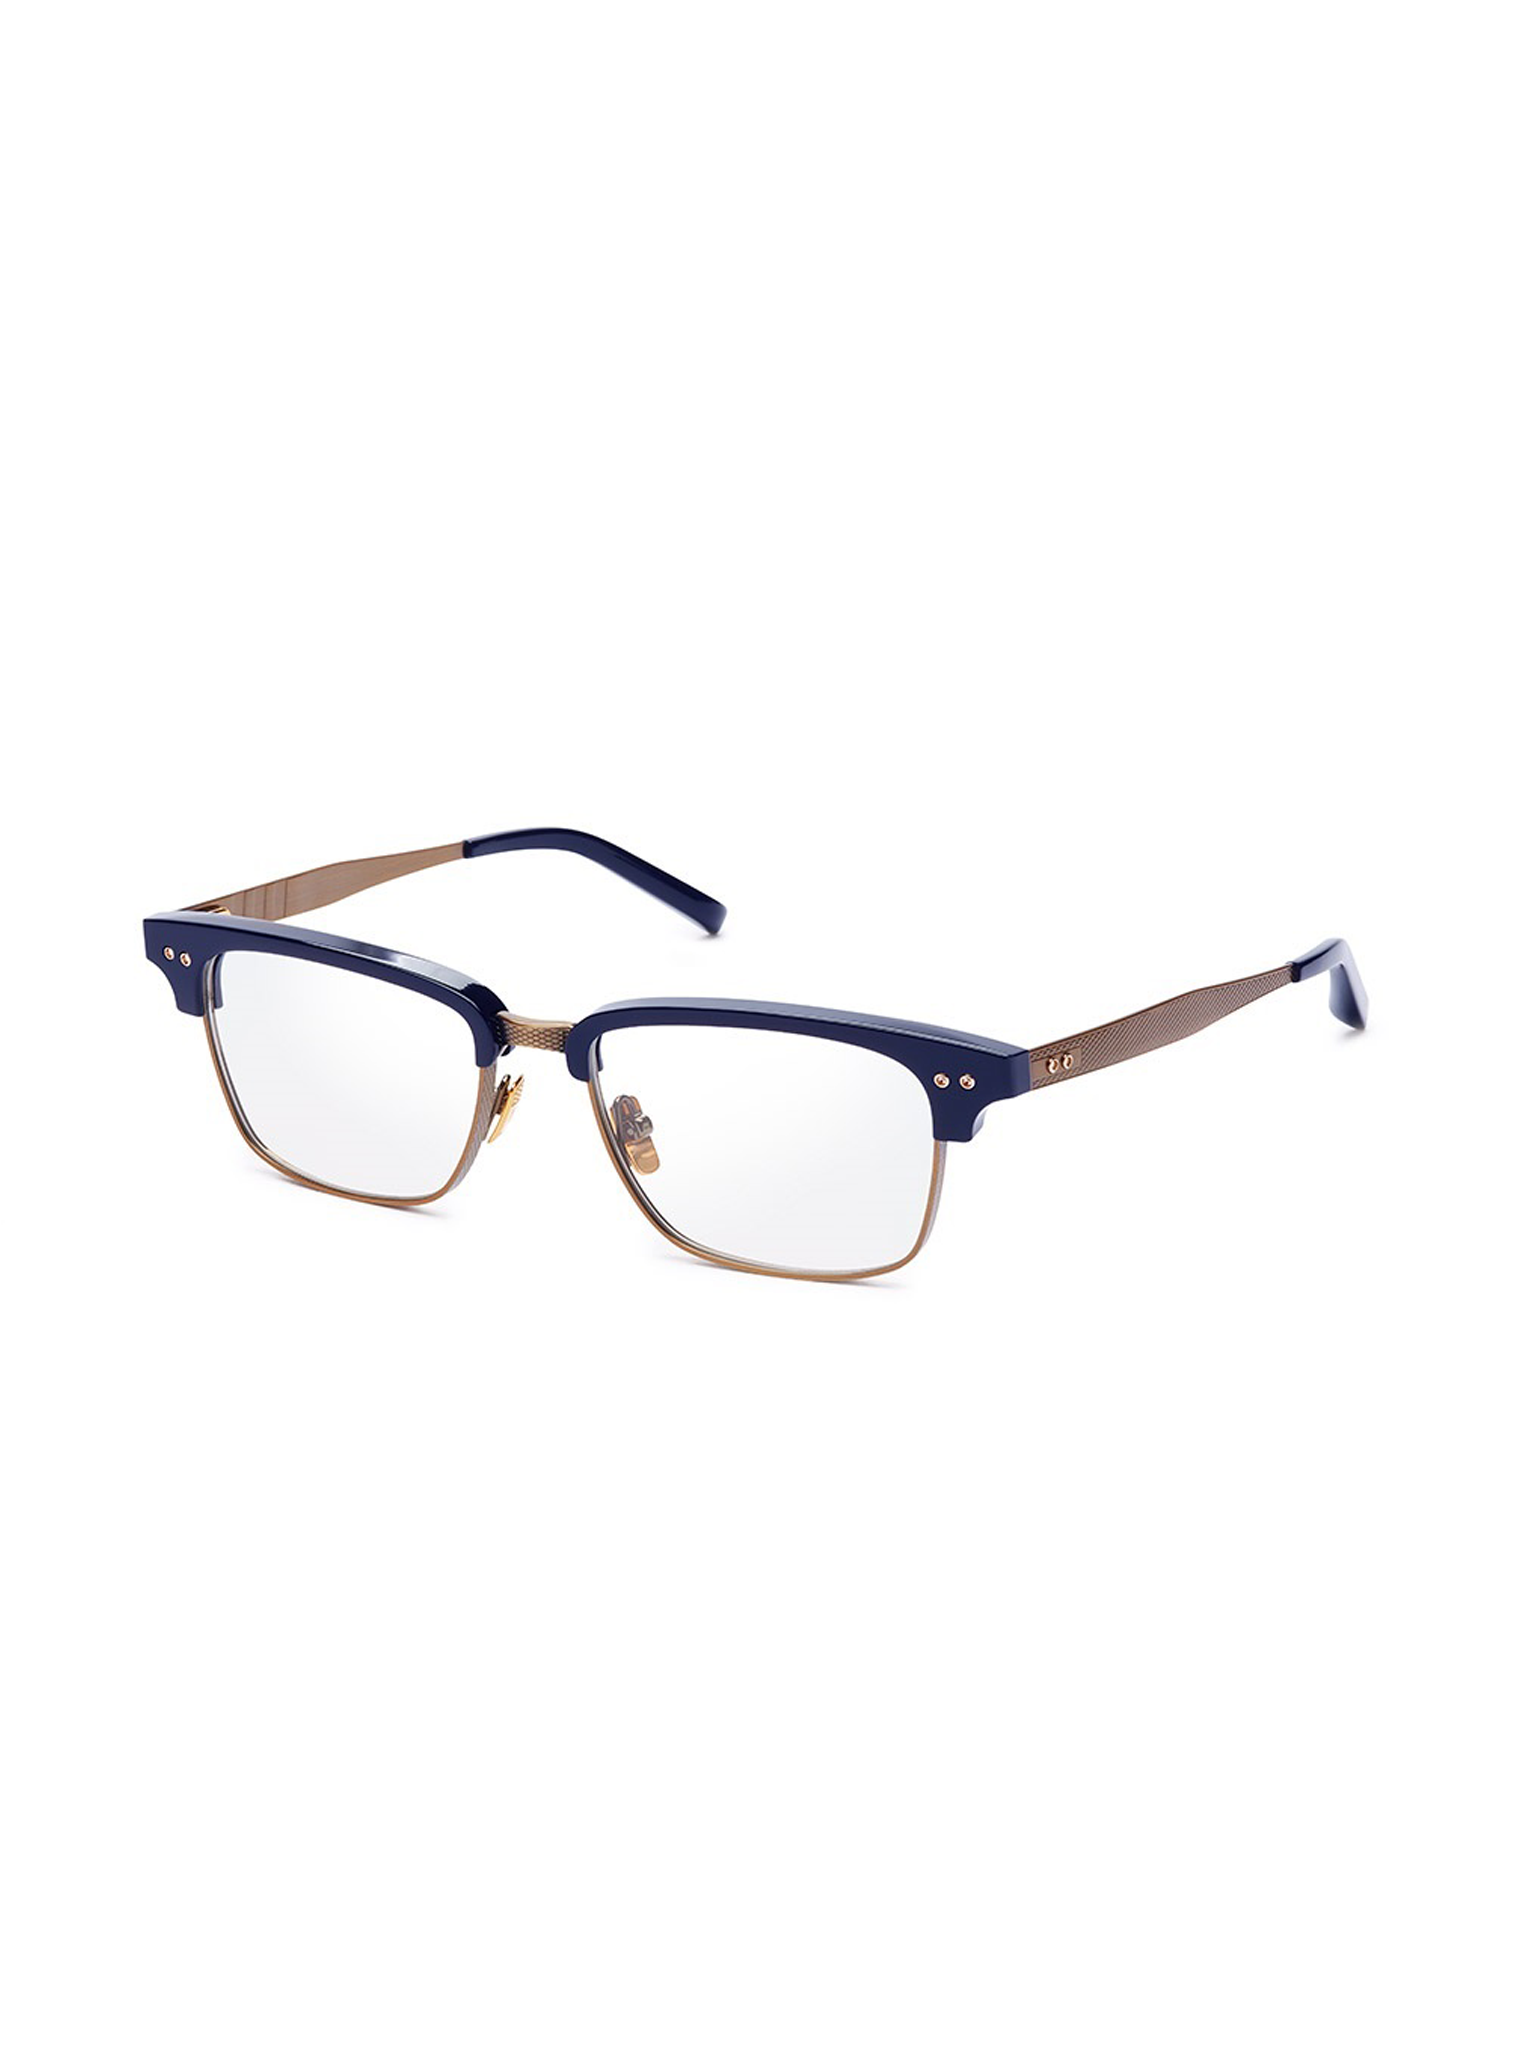 DITA STATESMAN THREE DRX-2011-E- NVY GLD GLASSES